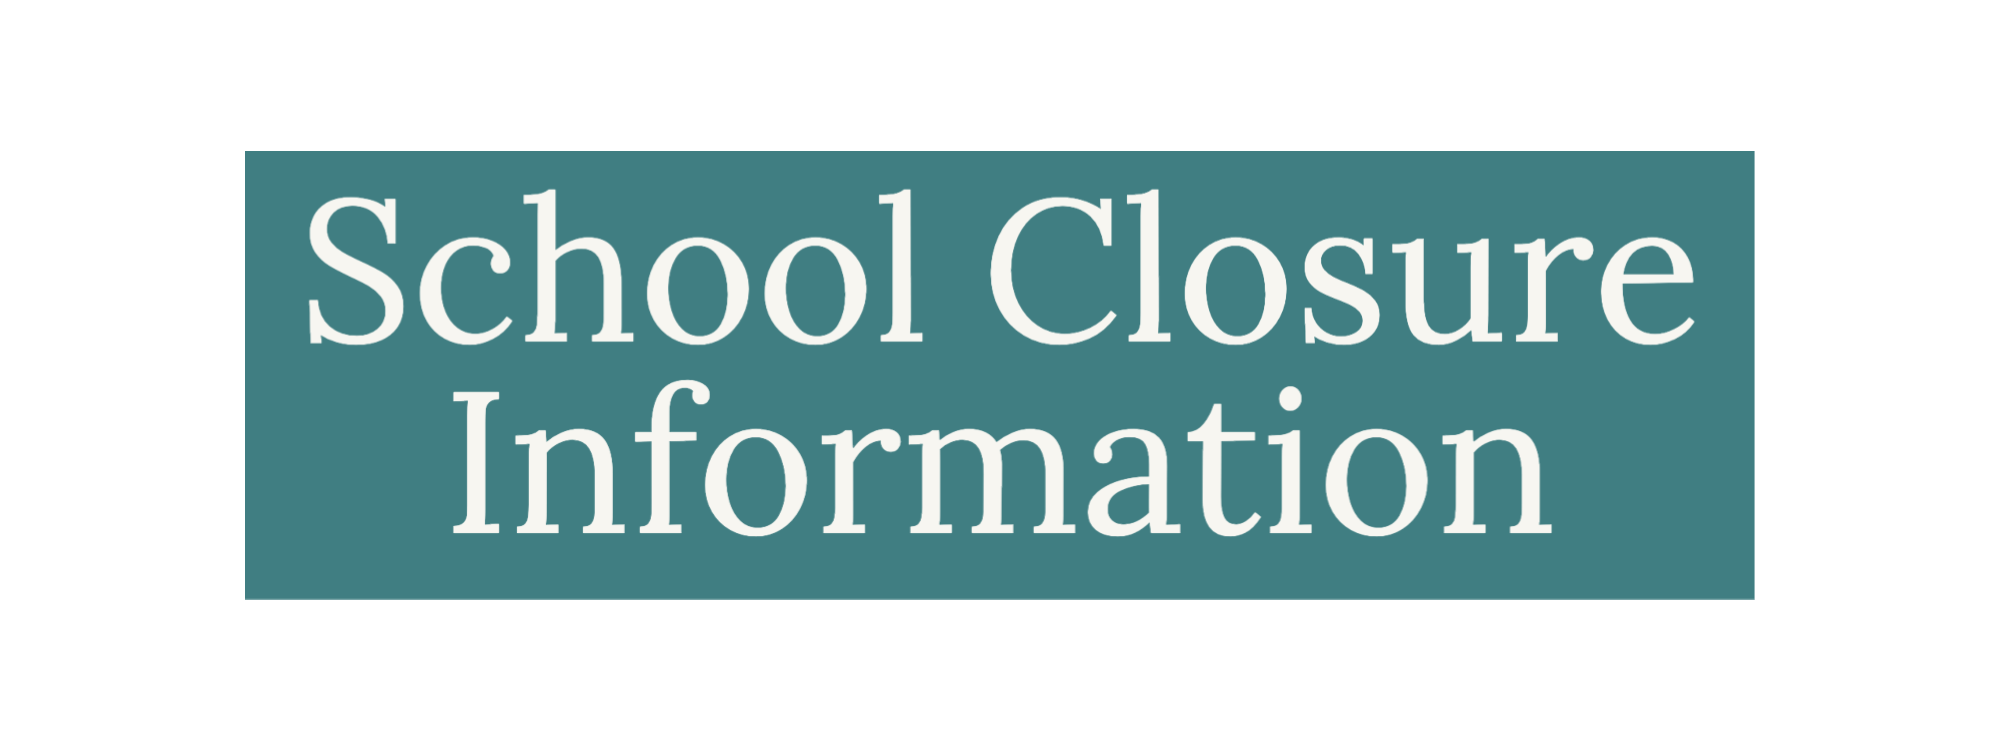 image of text: School Closure Information